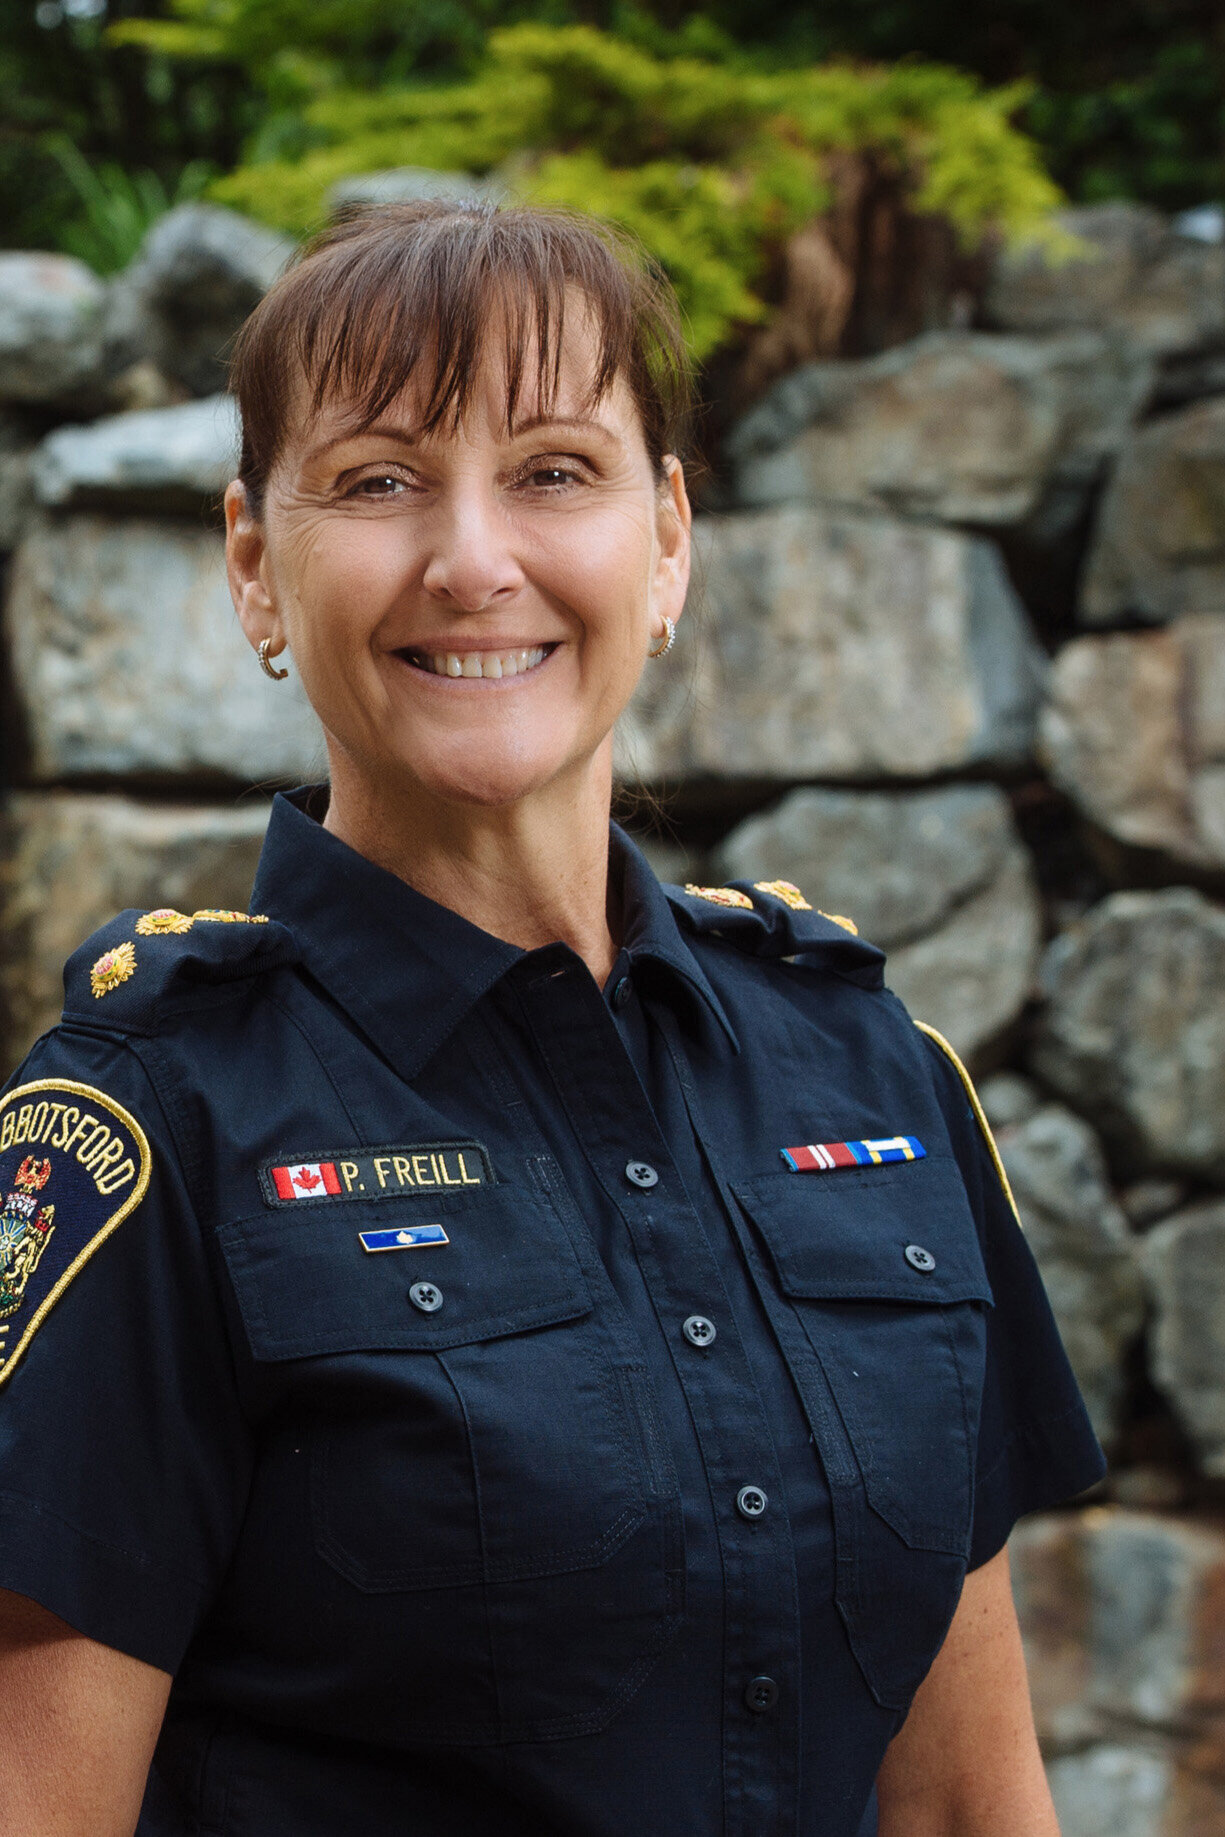 Ethical Leadership - Co-presented by Deputy Chief Constable Paulette Freill (above) and Staff Sergeant Crystal Jack, Abbotsford Police Department